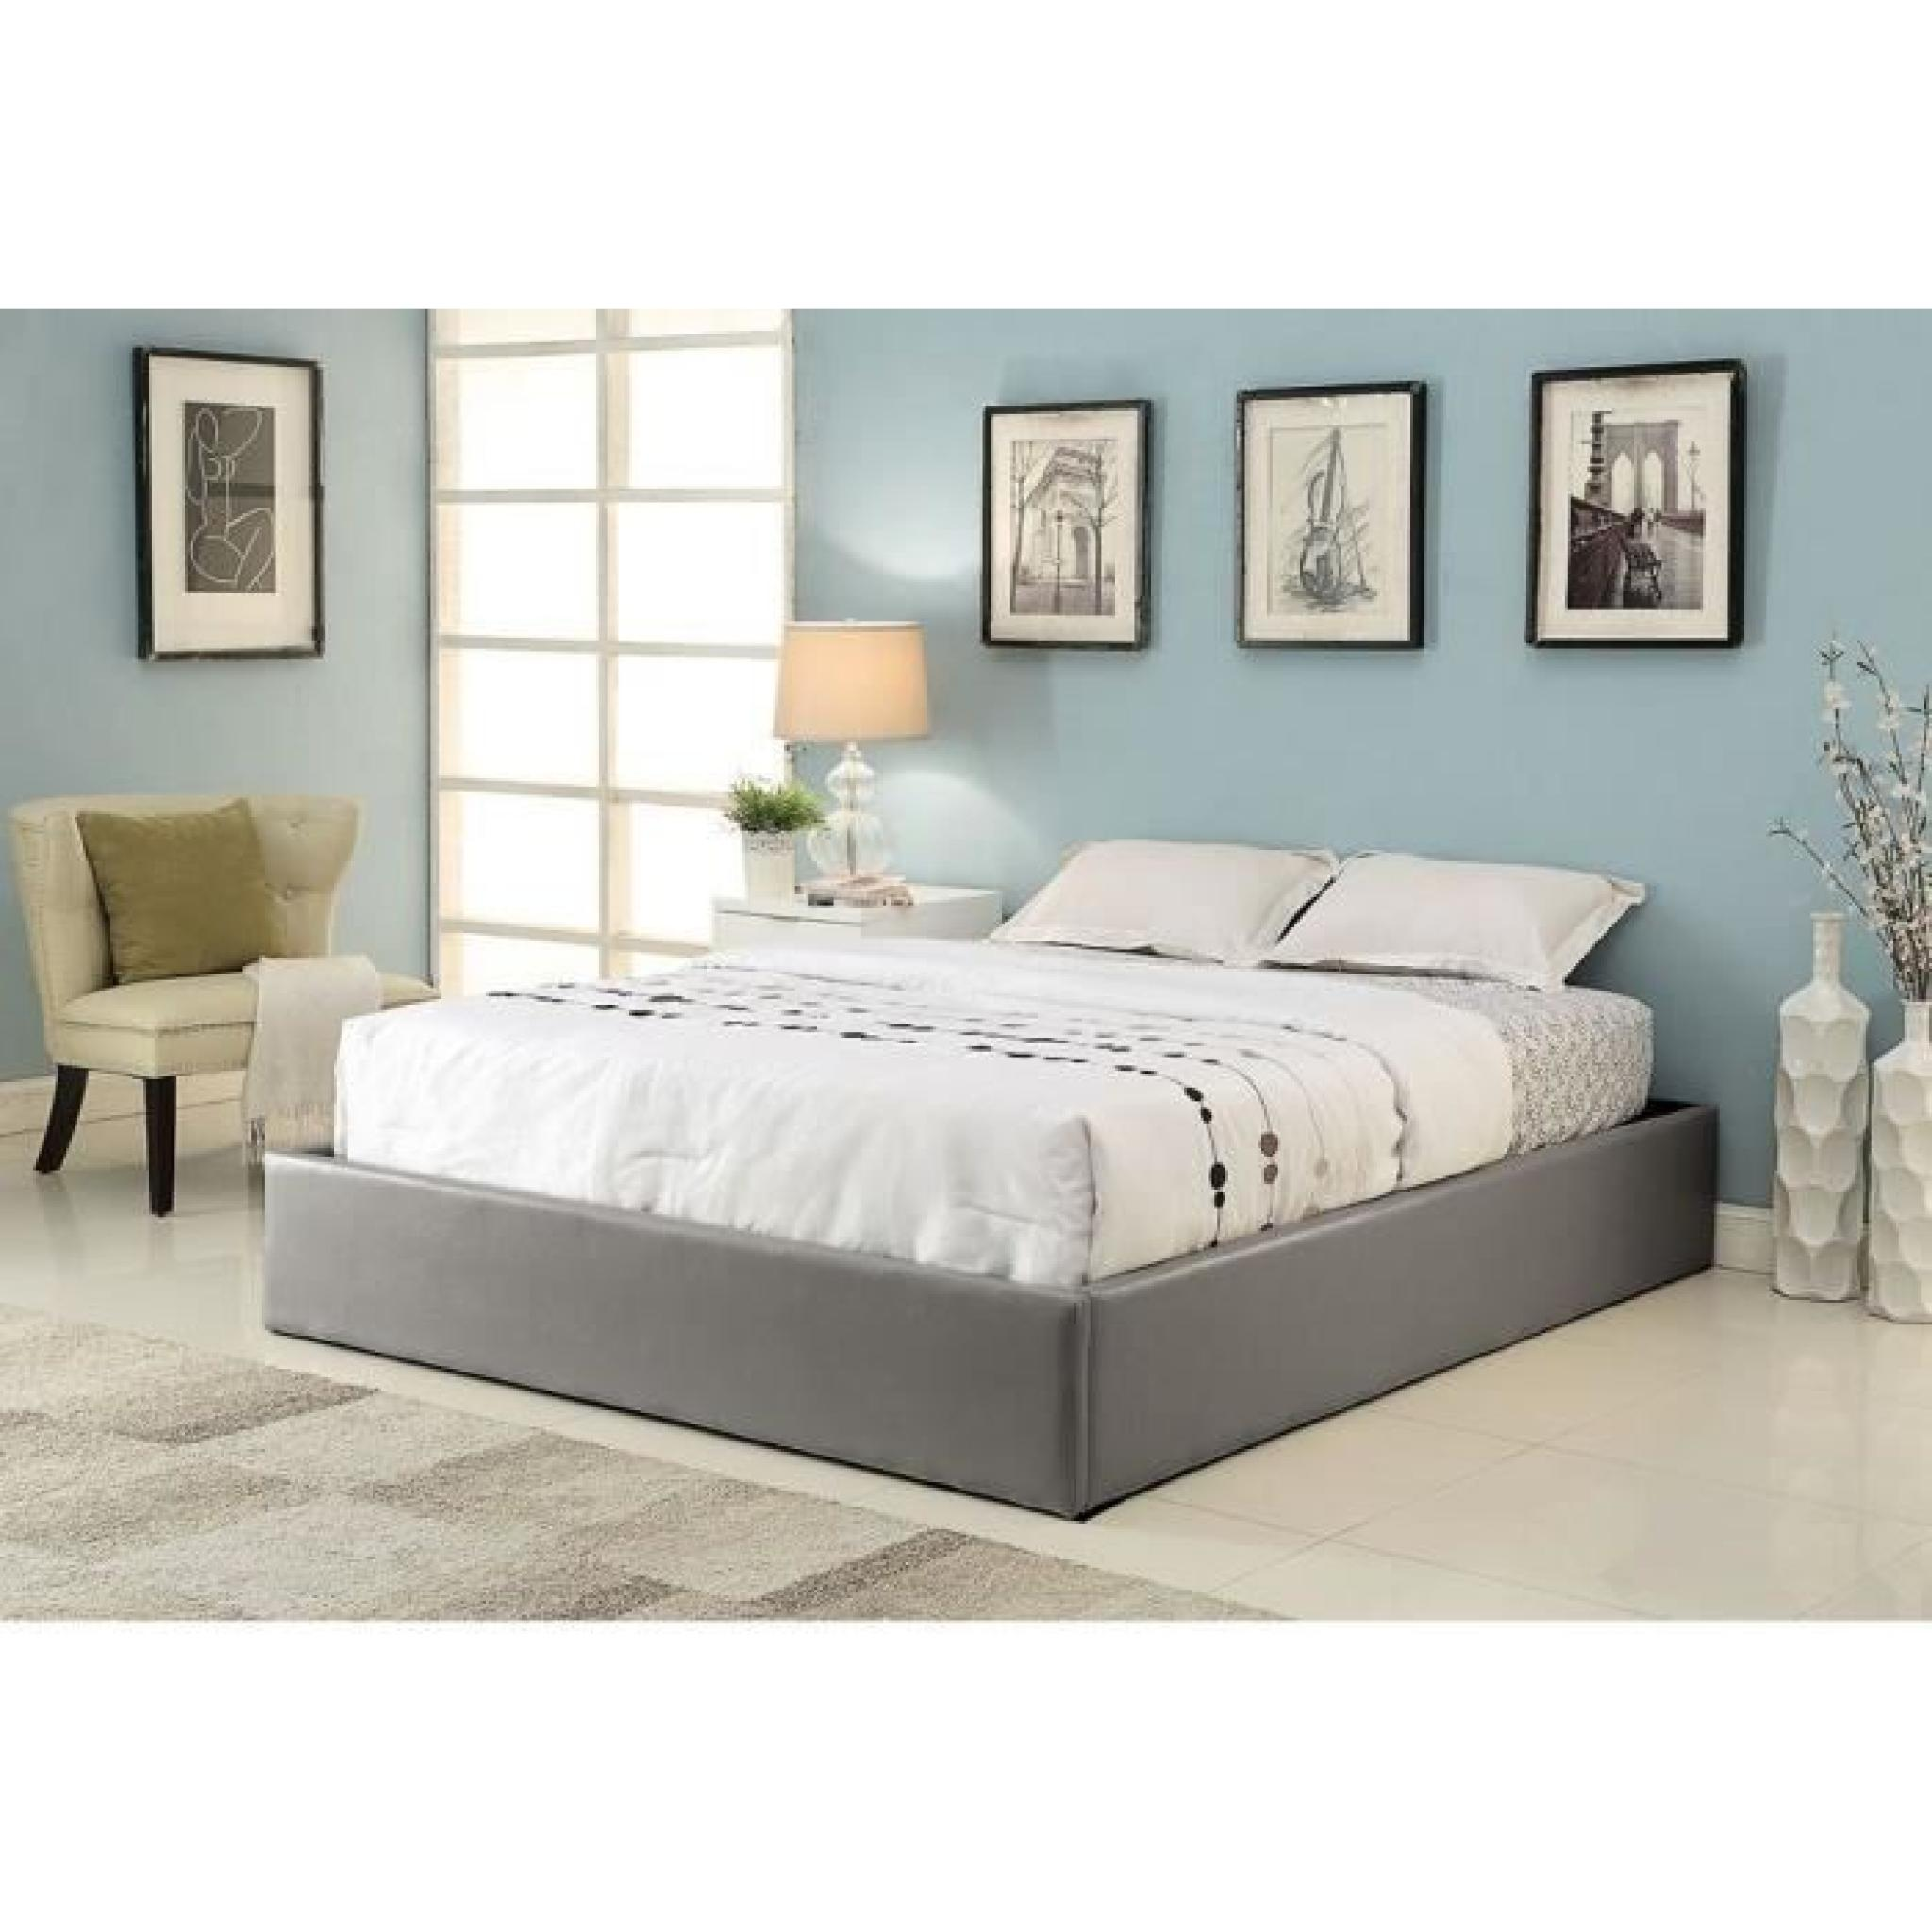 Lit Adulte Coffre Majesty Lit Coffre Adulte 140x190 Sommier Gris